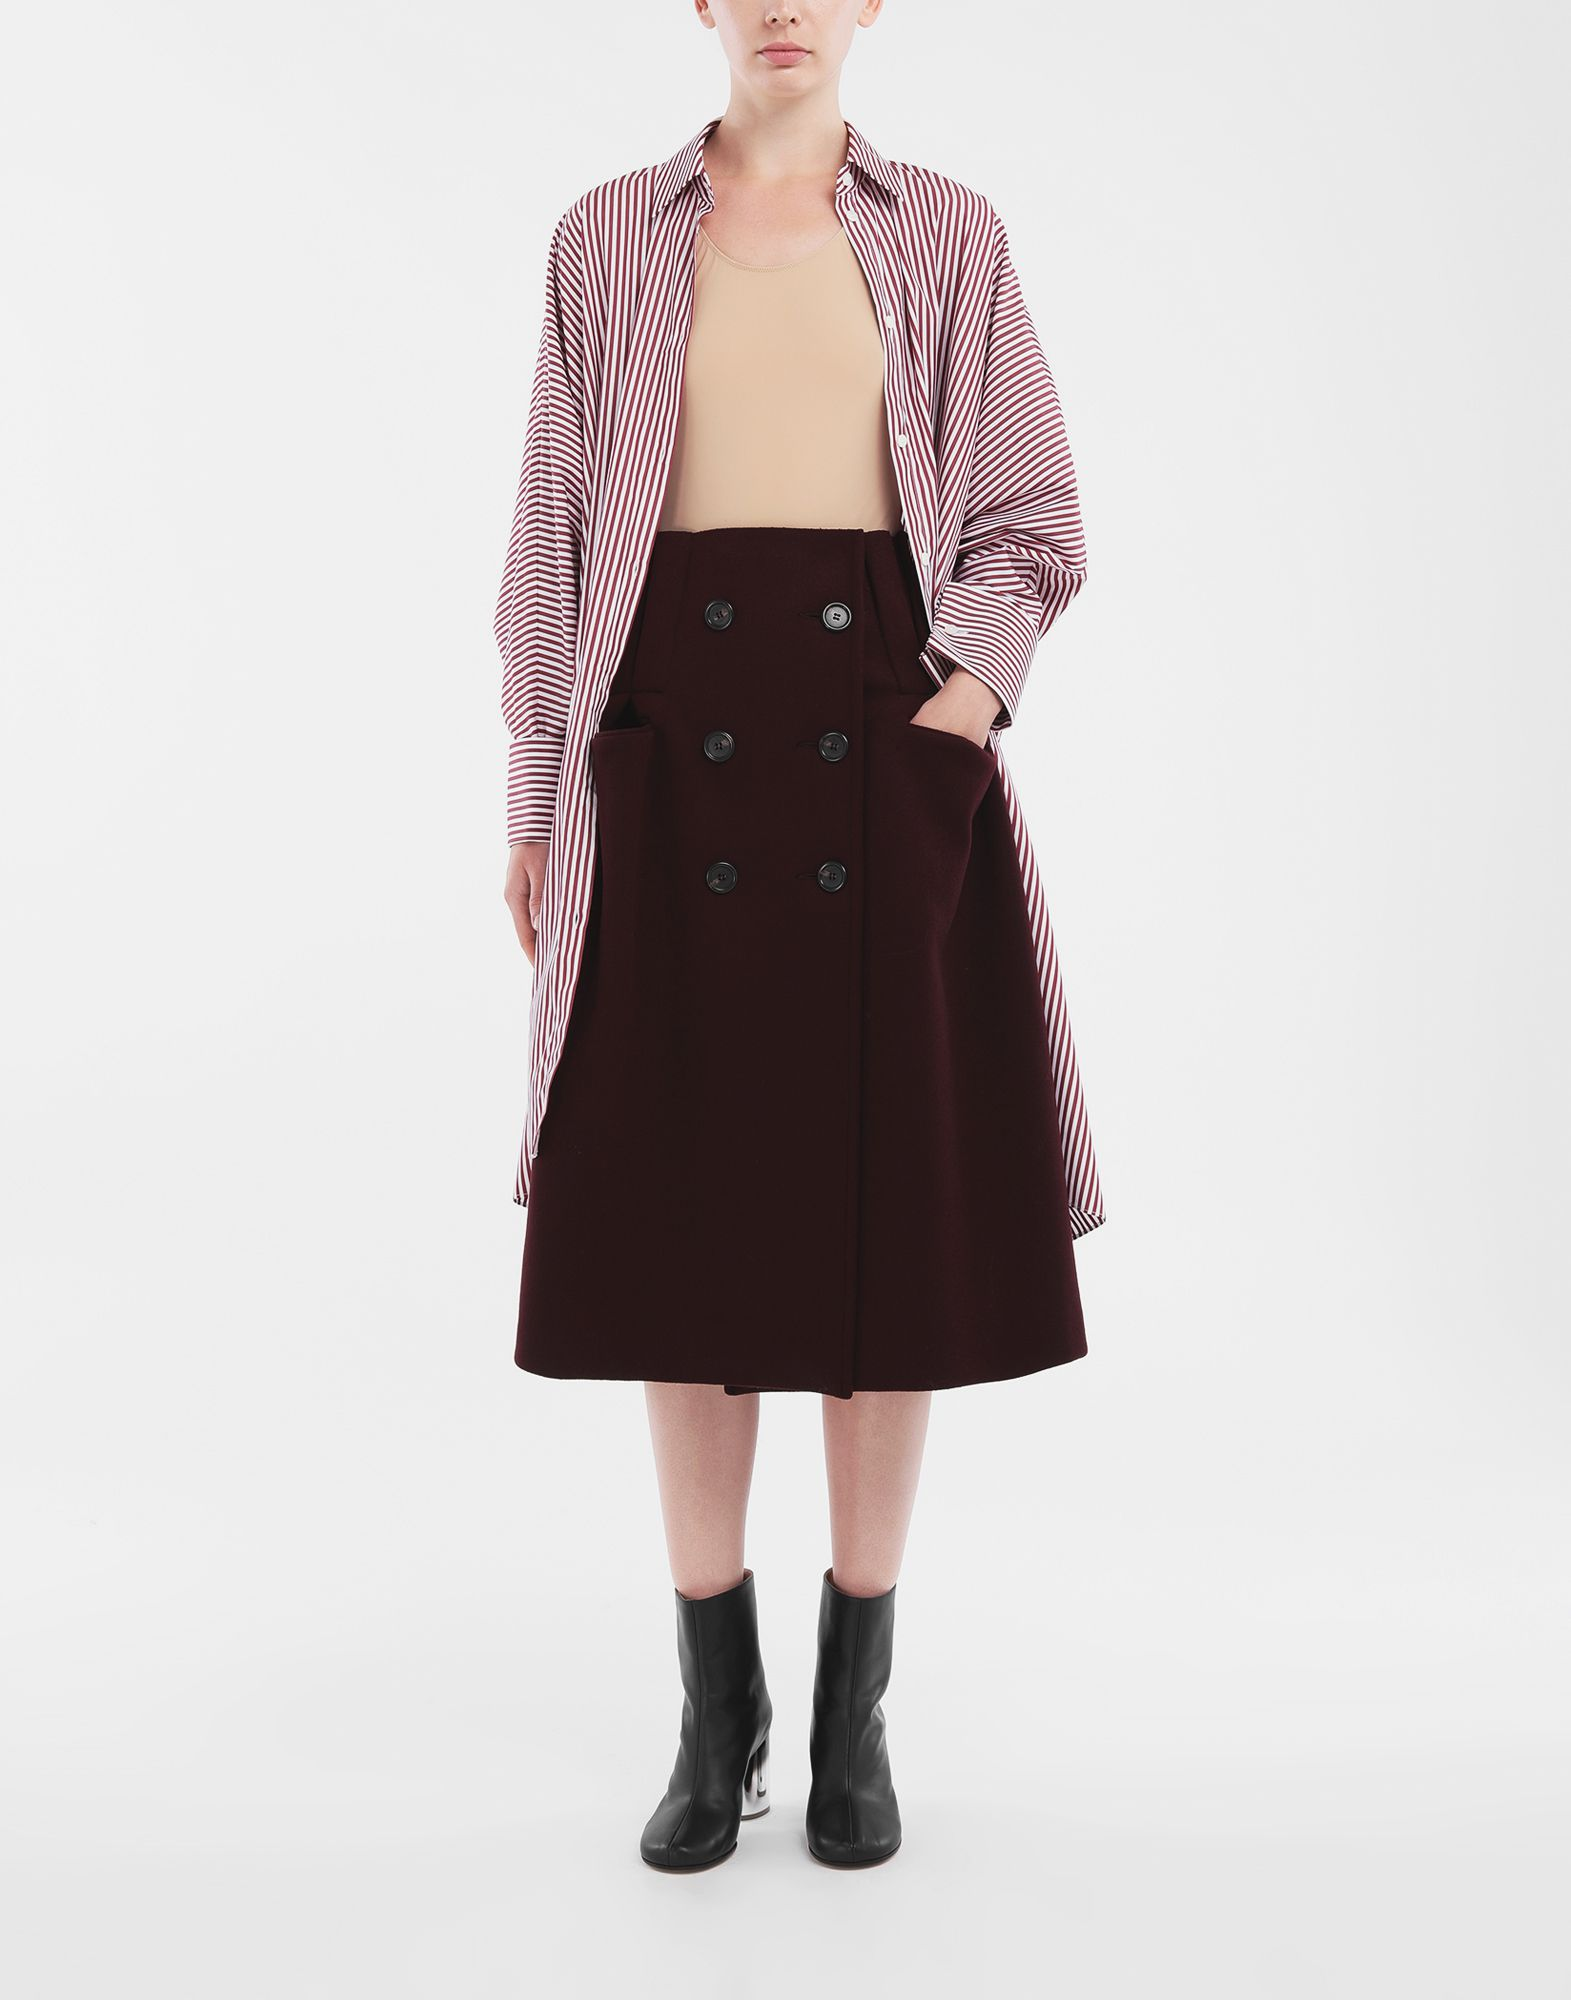 MAISON MARGIELA Reworked wool skirt 3/4 length skirt Woman d